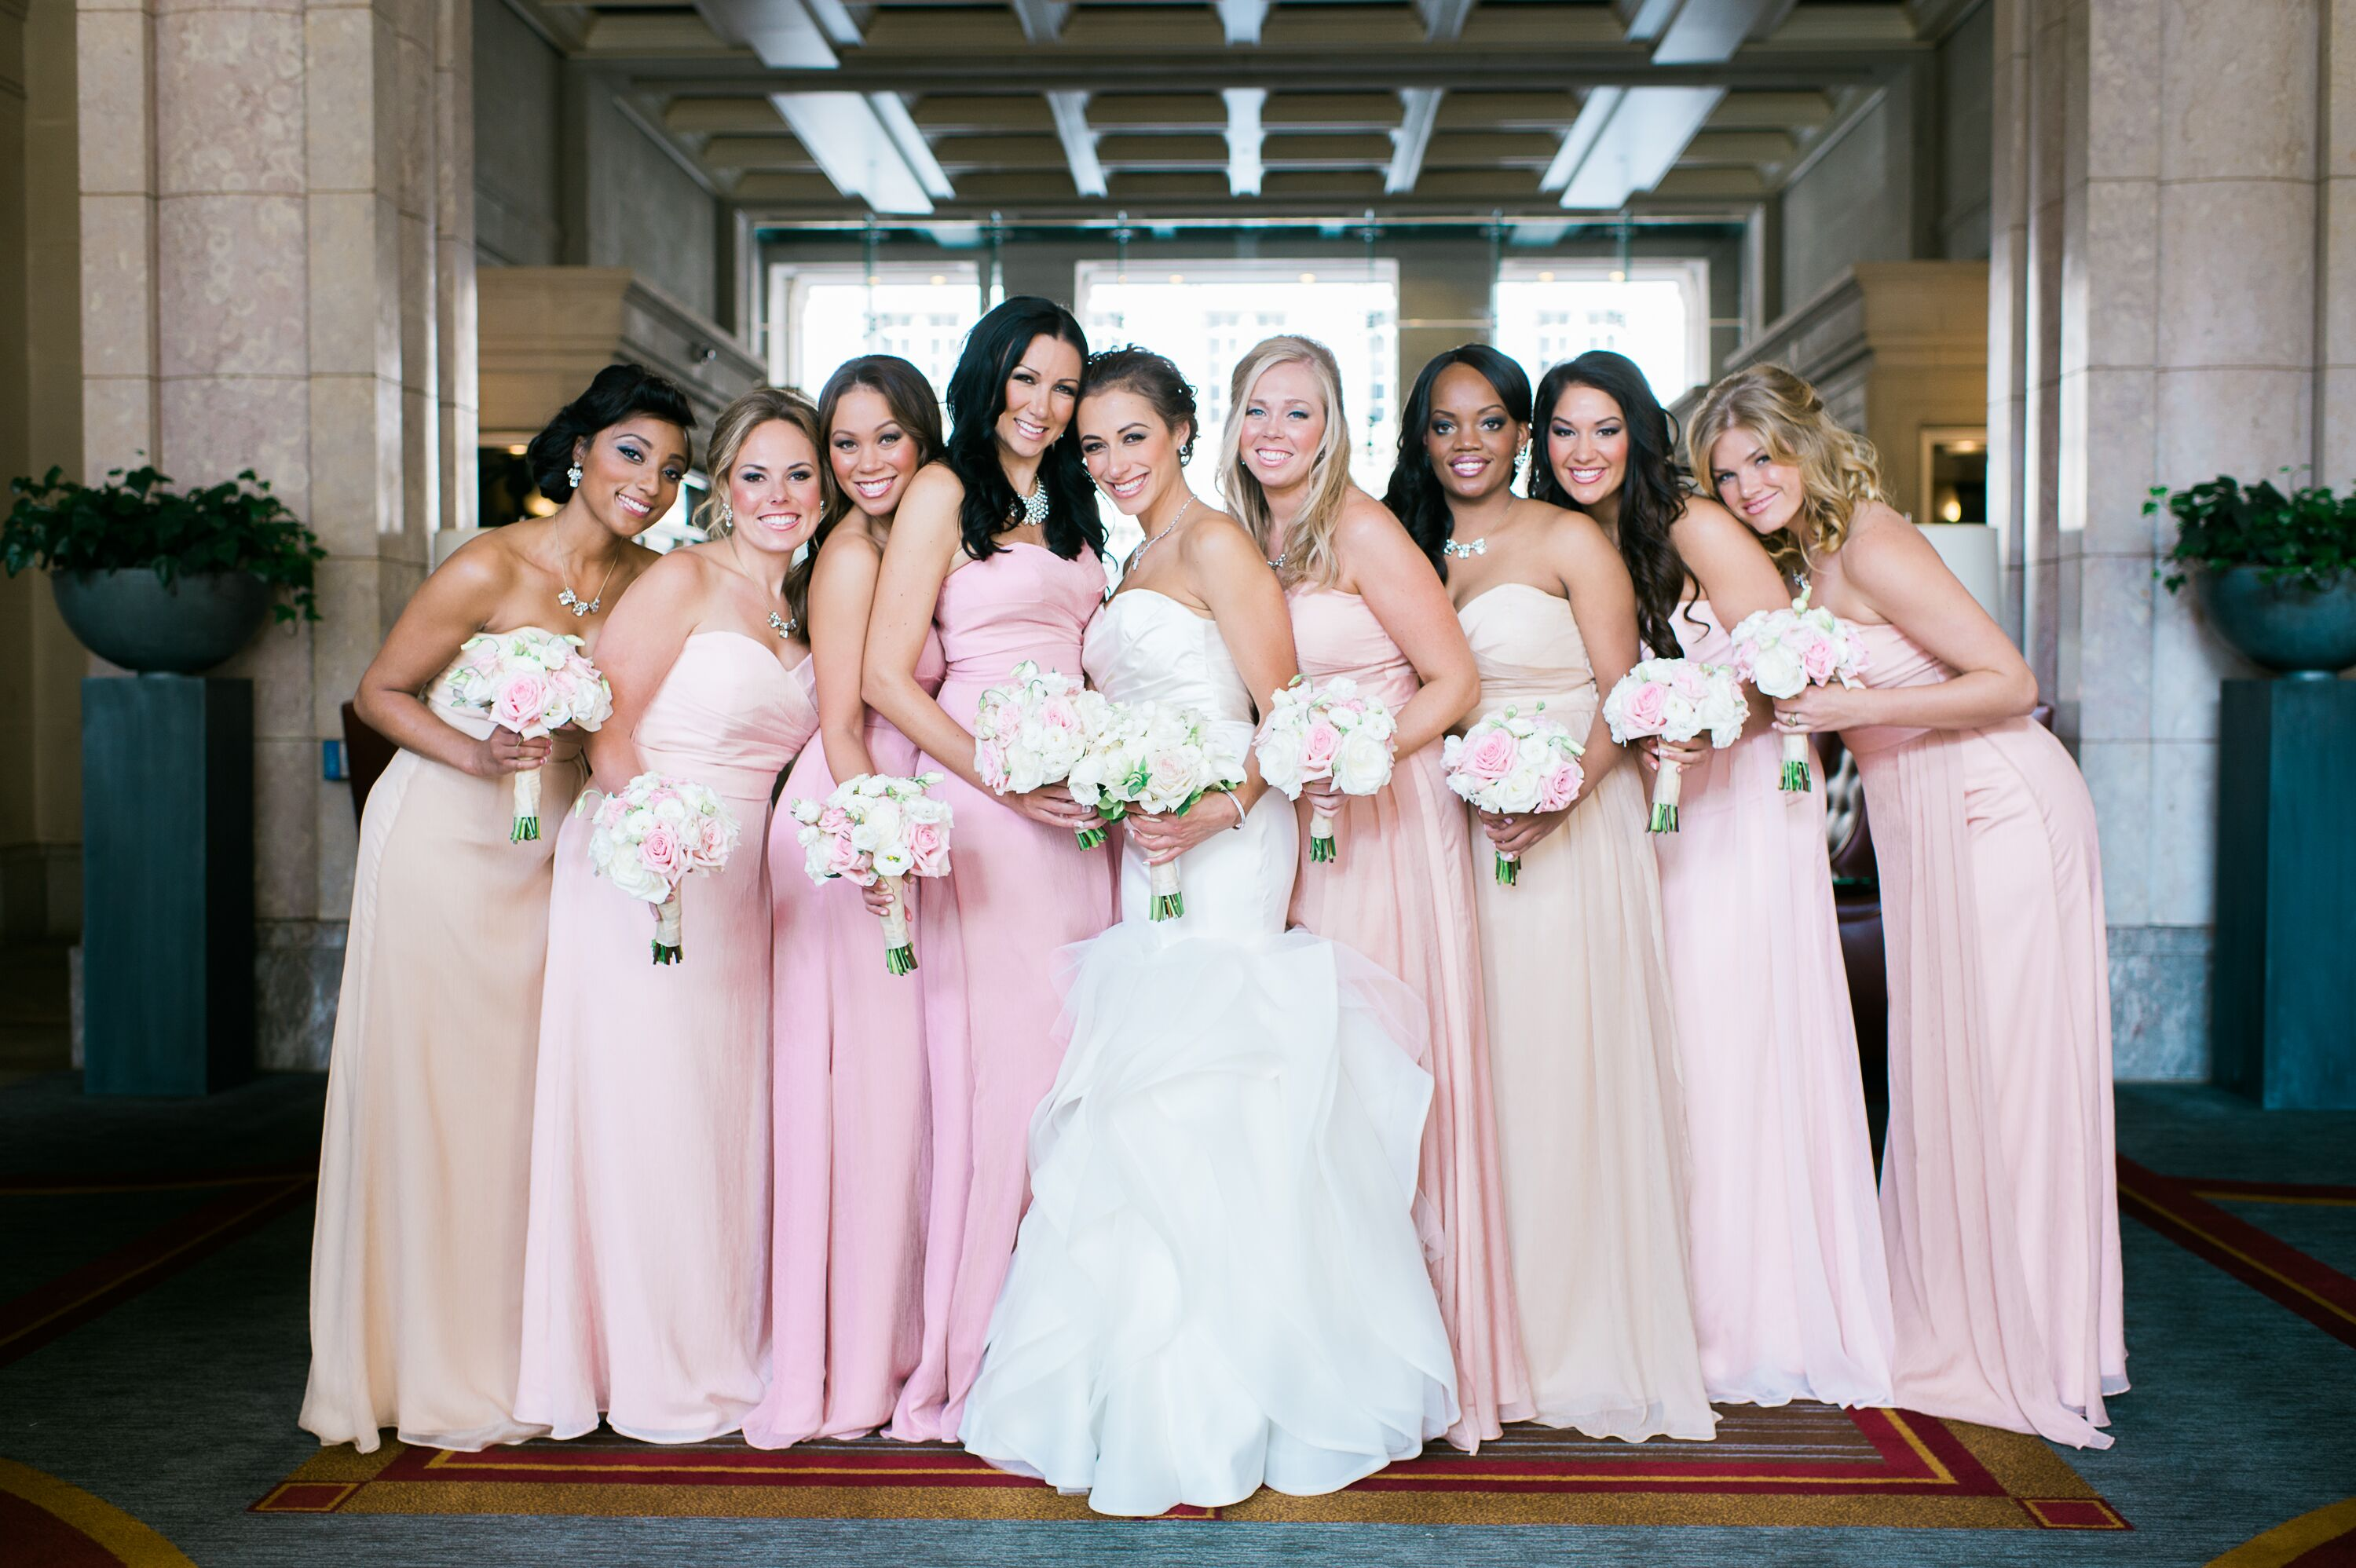 Floor Length Bridesmaid Dresses In Shades Of Pink